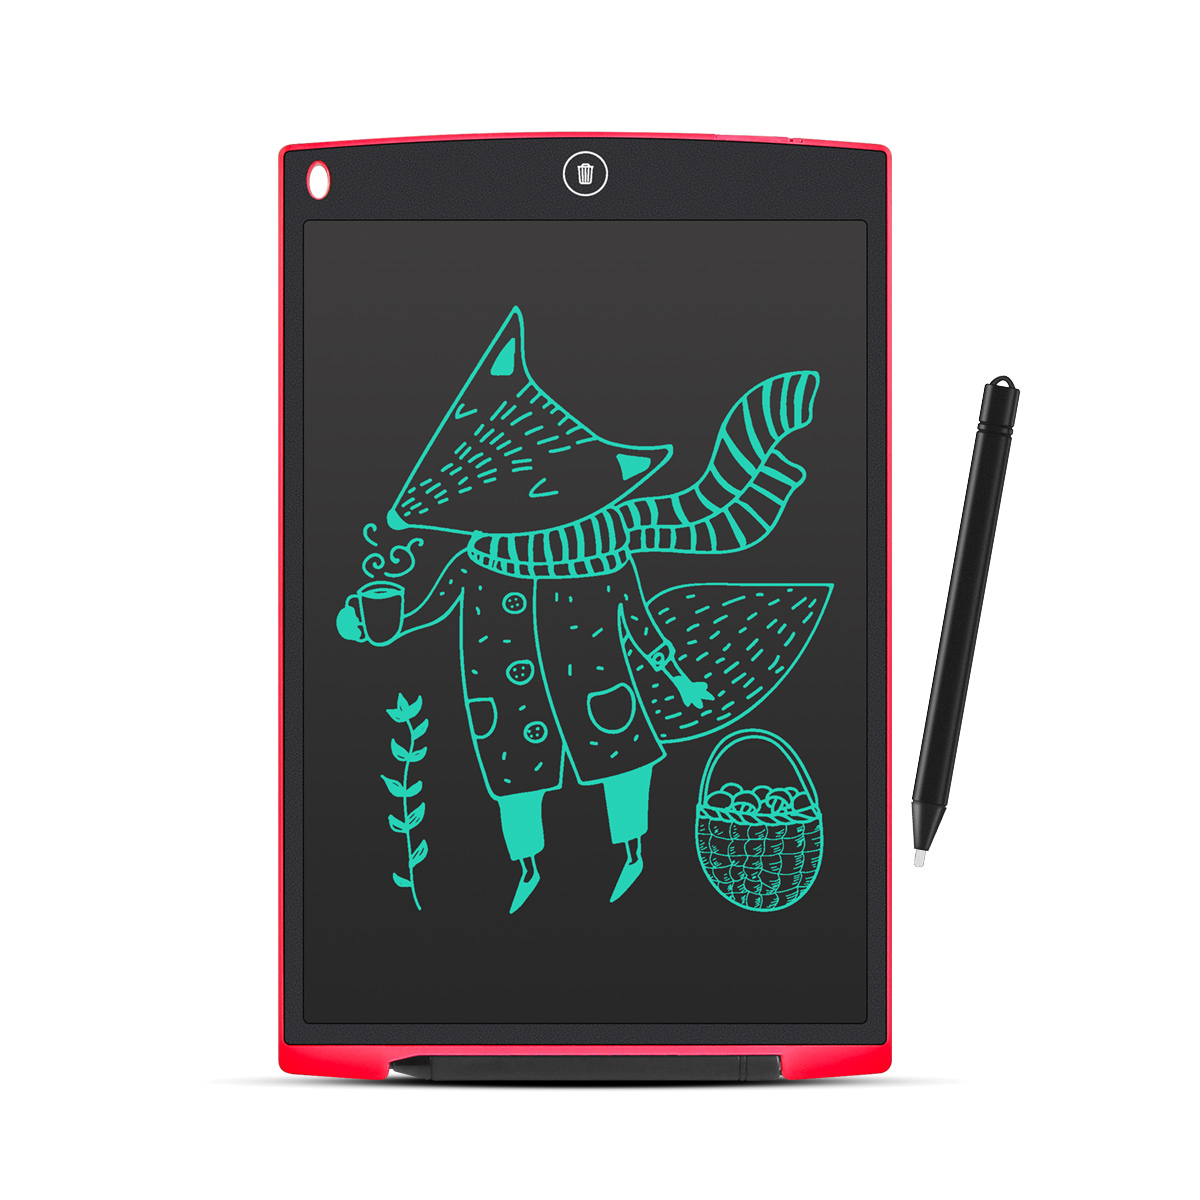 LCD Writing Board//Childrens Drawing Graffiti Board//Message Board//Electronic Note Board//with Lock Screen School Magnet//Suitable for Home Office Pink - 8.5 Inch